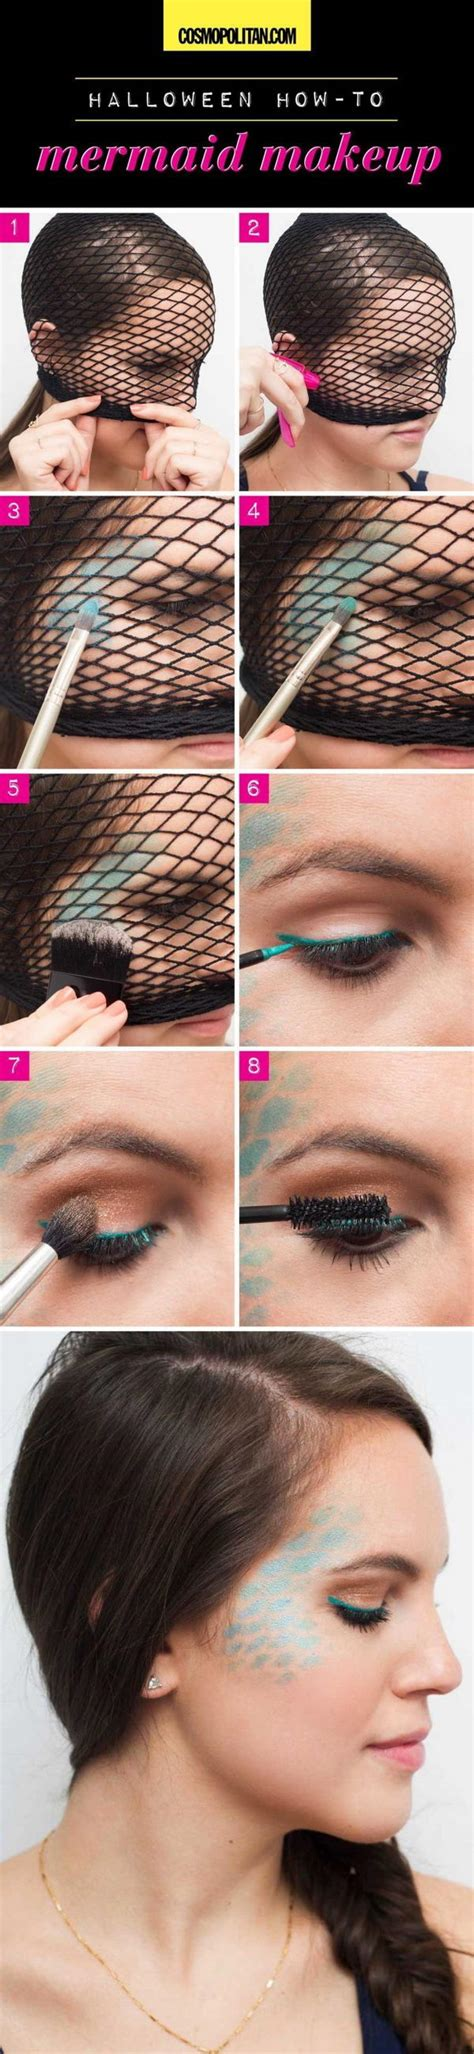 25+ Super Cool Step by Step Makeup Tutorials for Halloween - Hative